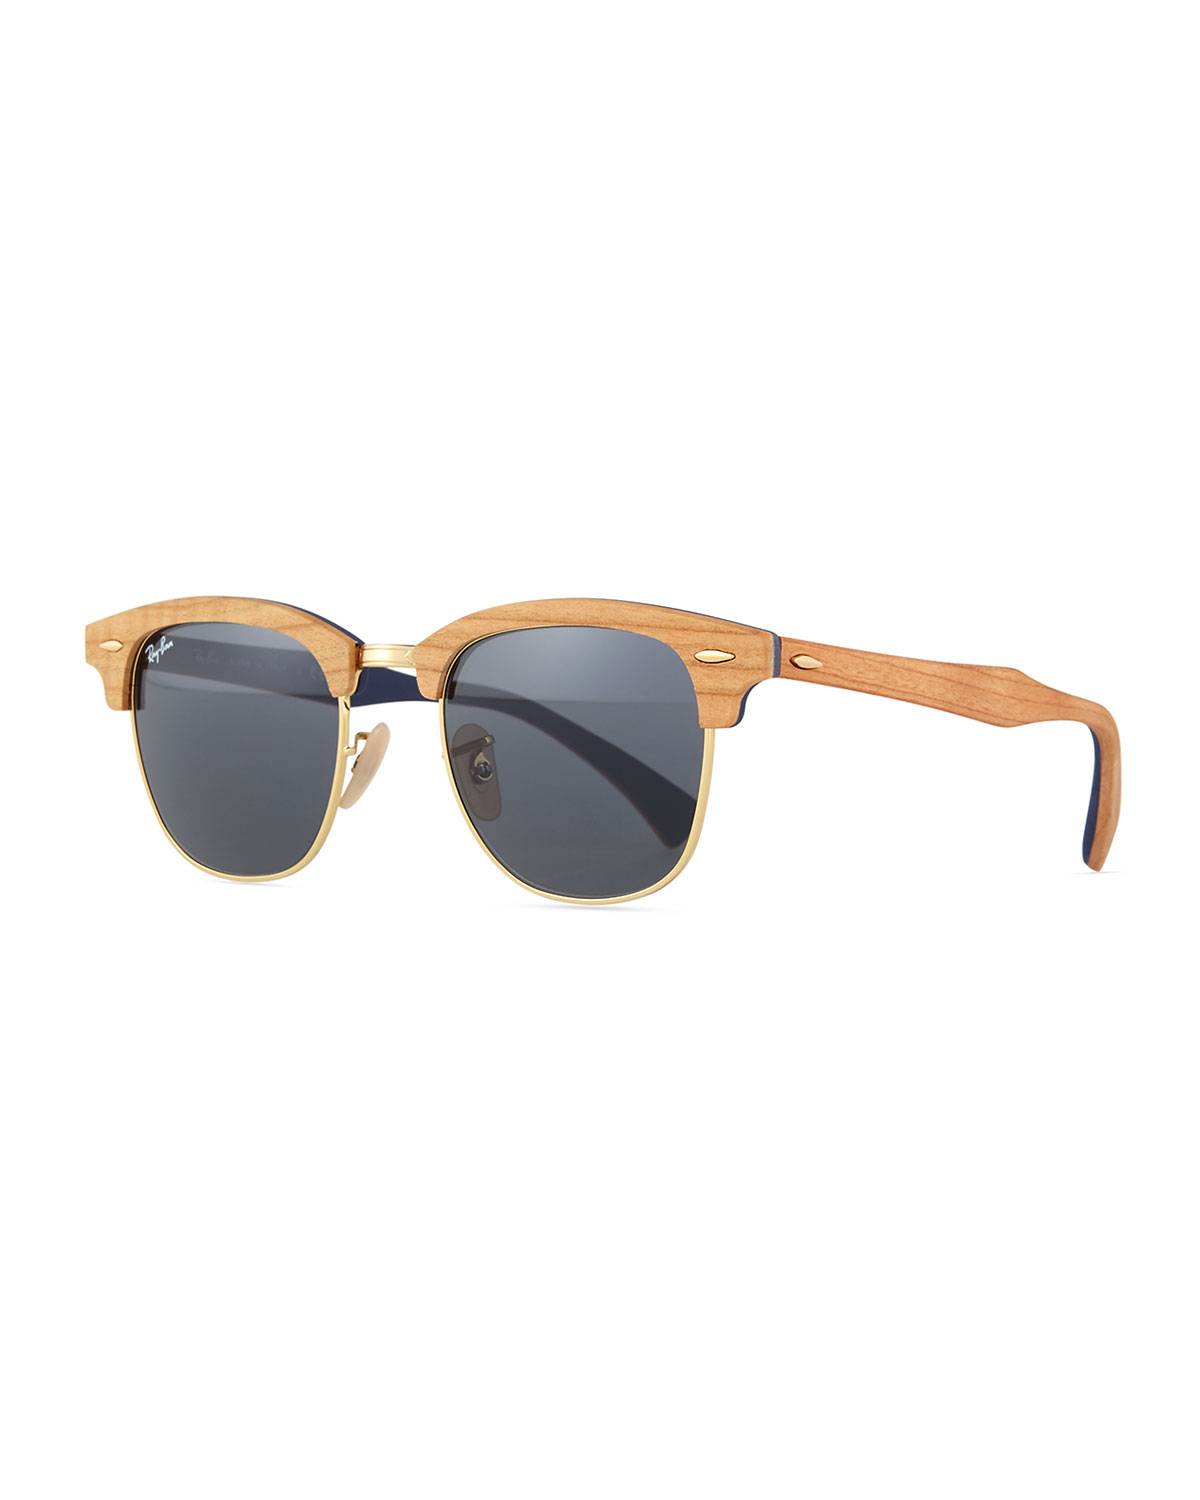 ray ban youngster clubmaster sunglasses  gallery. previously sold at: neiman marcus · men's ray ban clubmaster